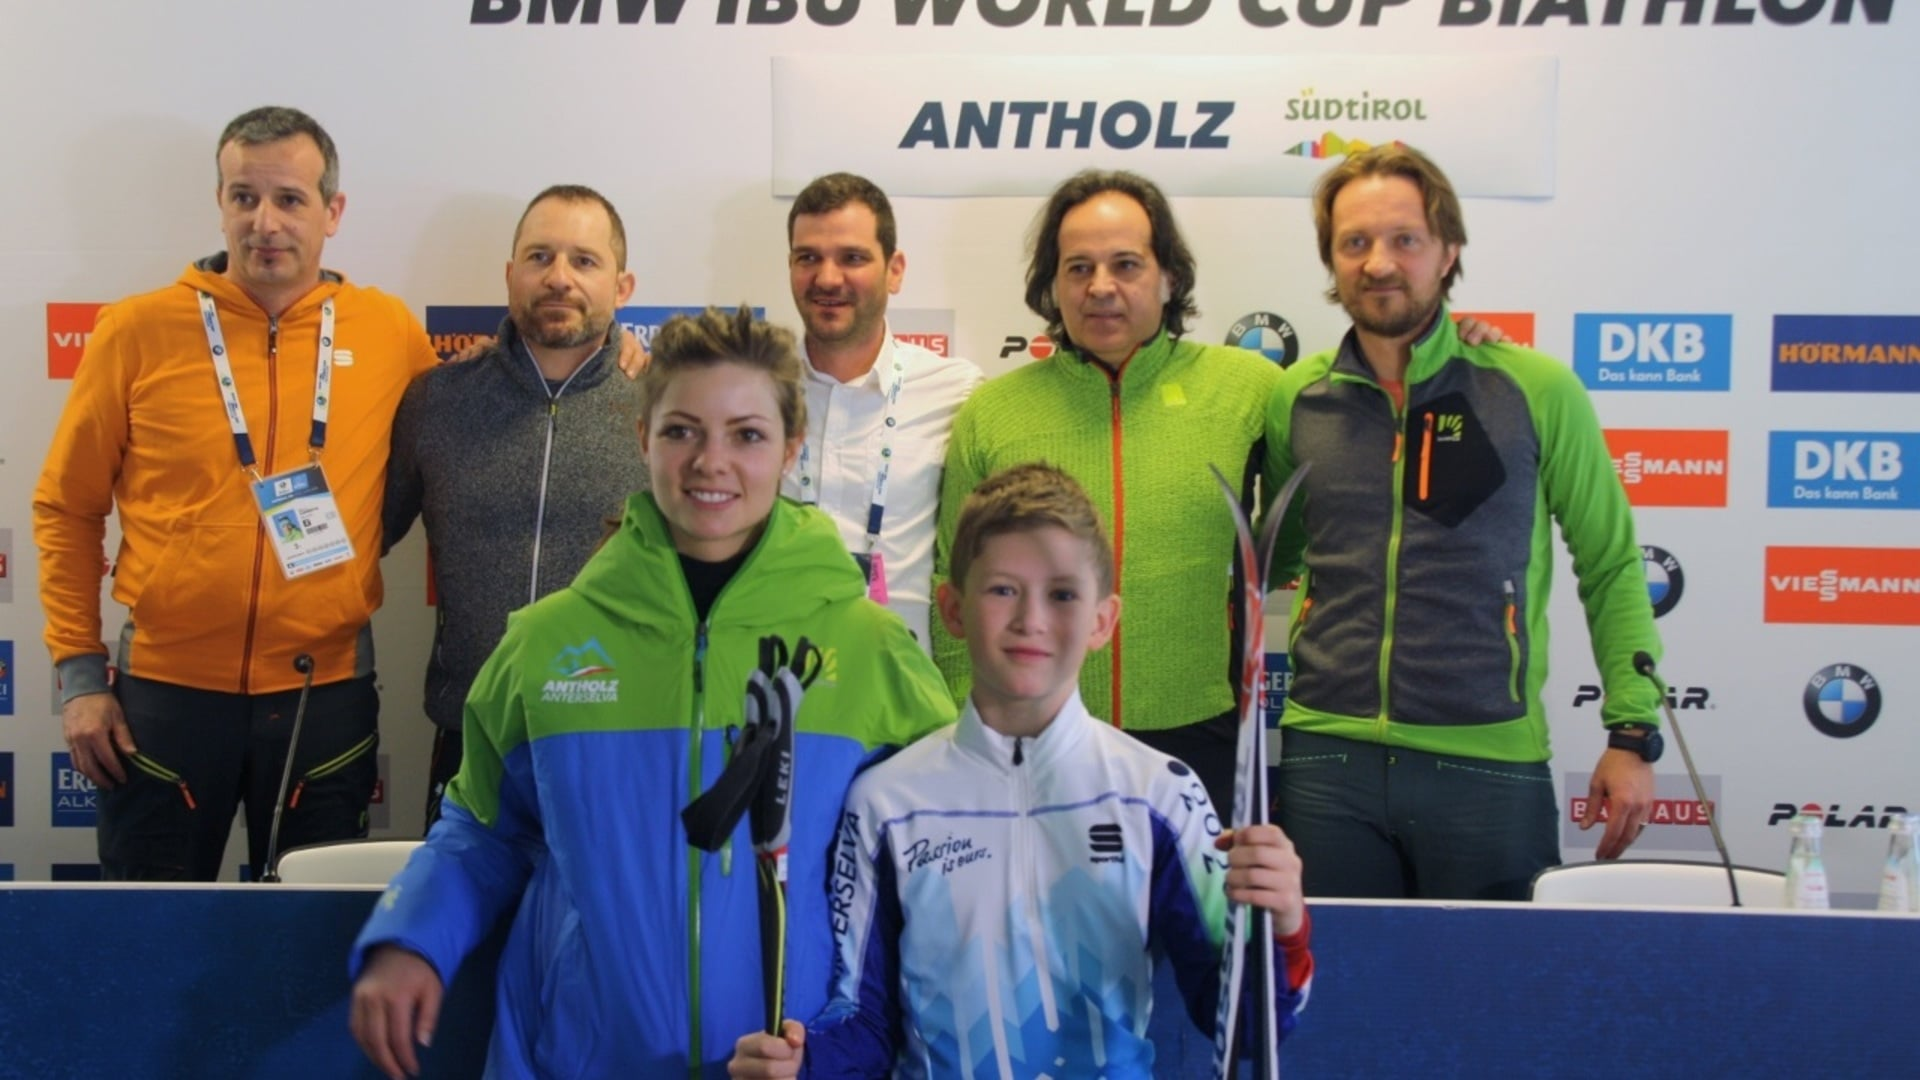 25.01.2019 - SPORTFUL AND KARPOS PARTNER WITH ANTERSELVA / ANTHOLZ 2020